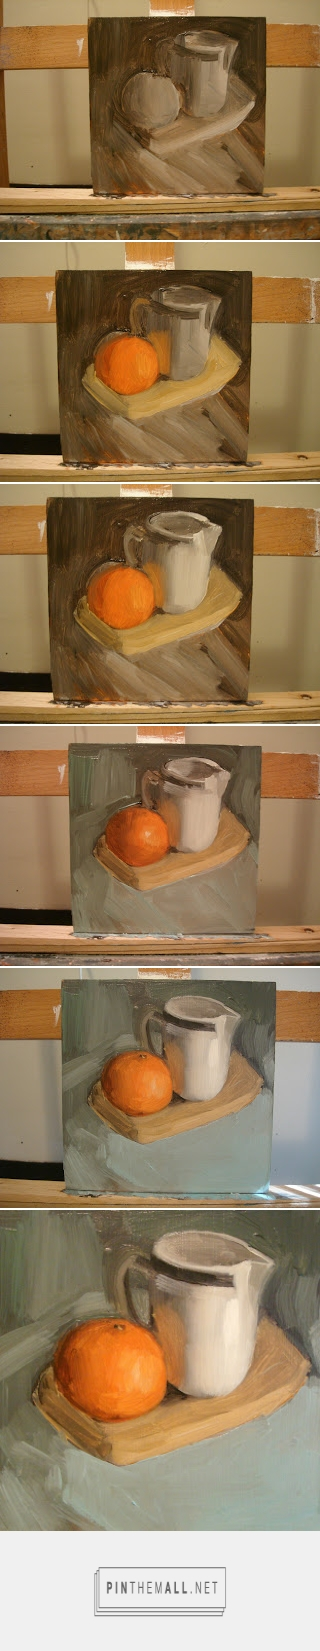 Timelapse for Mandarin Orange and Cream Pitcher / By Michael William /     http://worksbymwilliam.blogspot.com/